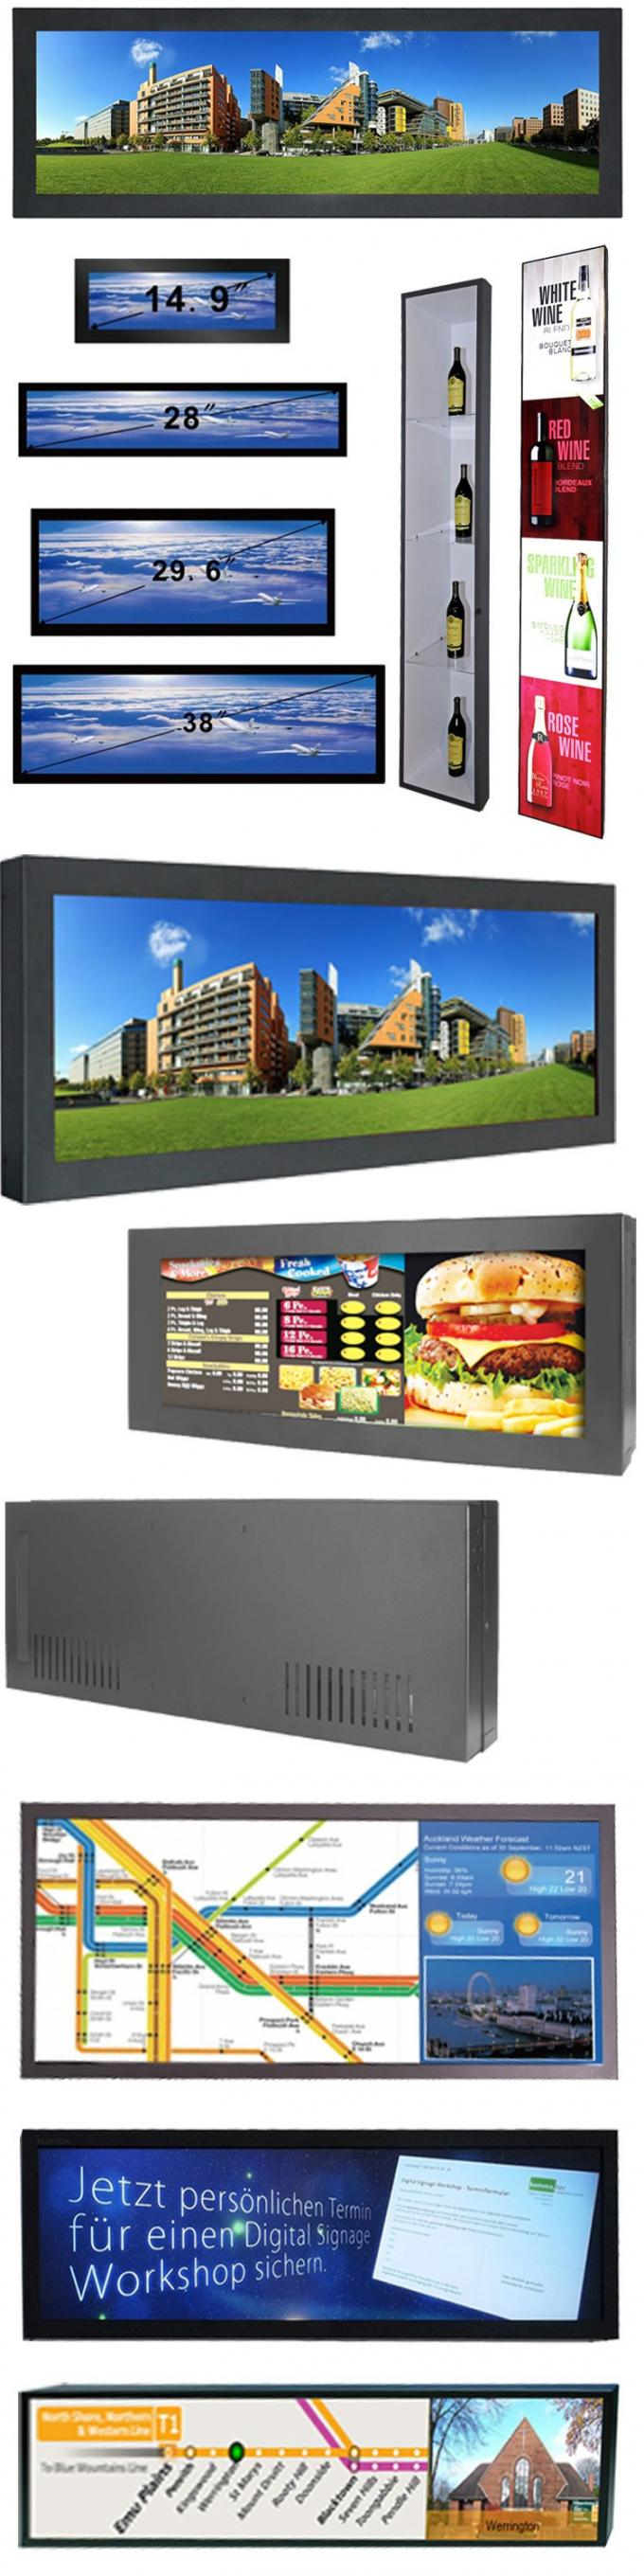 28 Inch High Resolution Wall Mounted Digital Signage Display For Supermarket